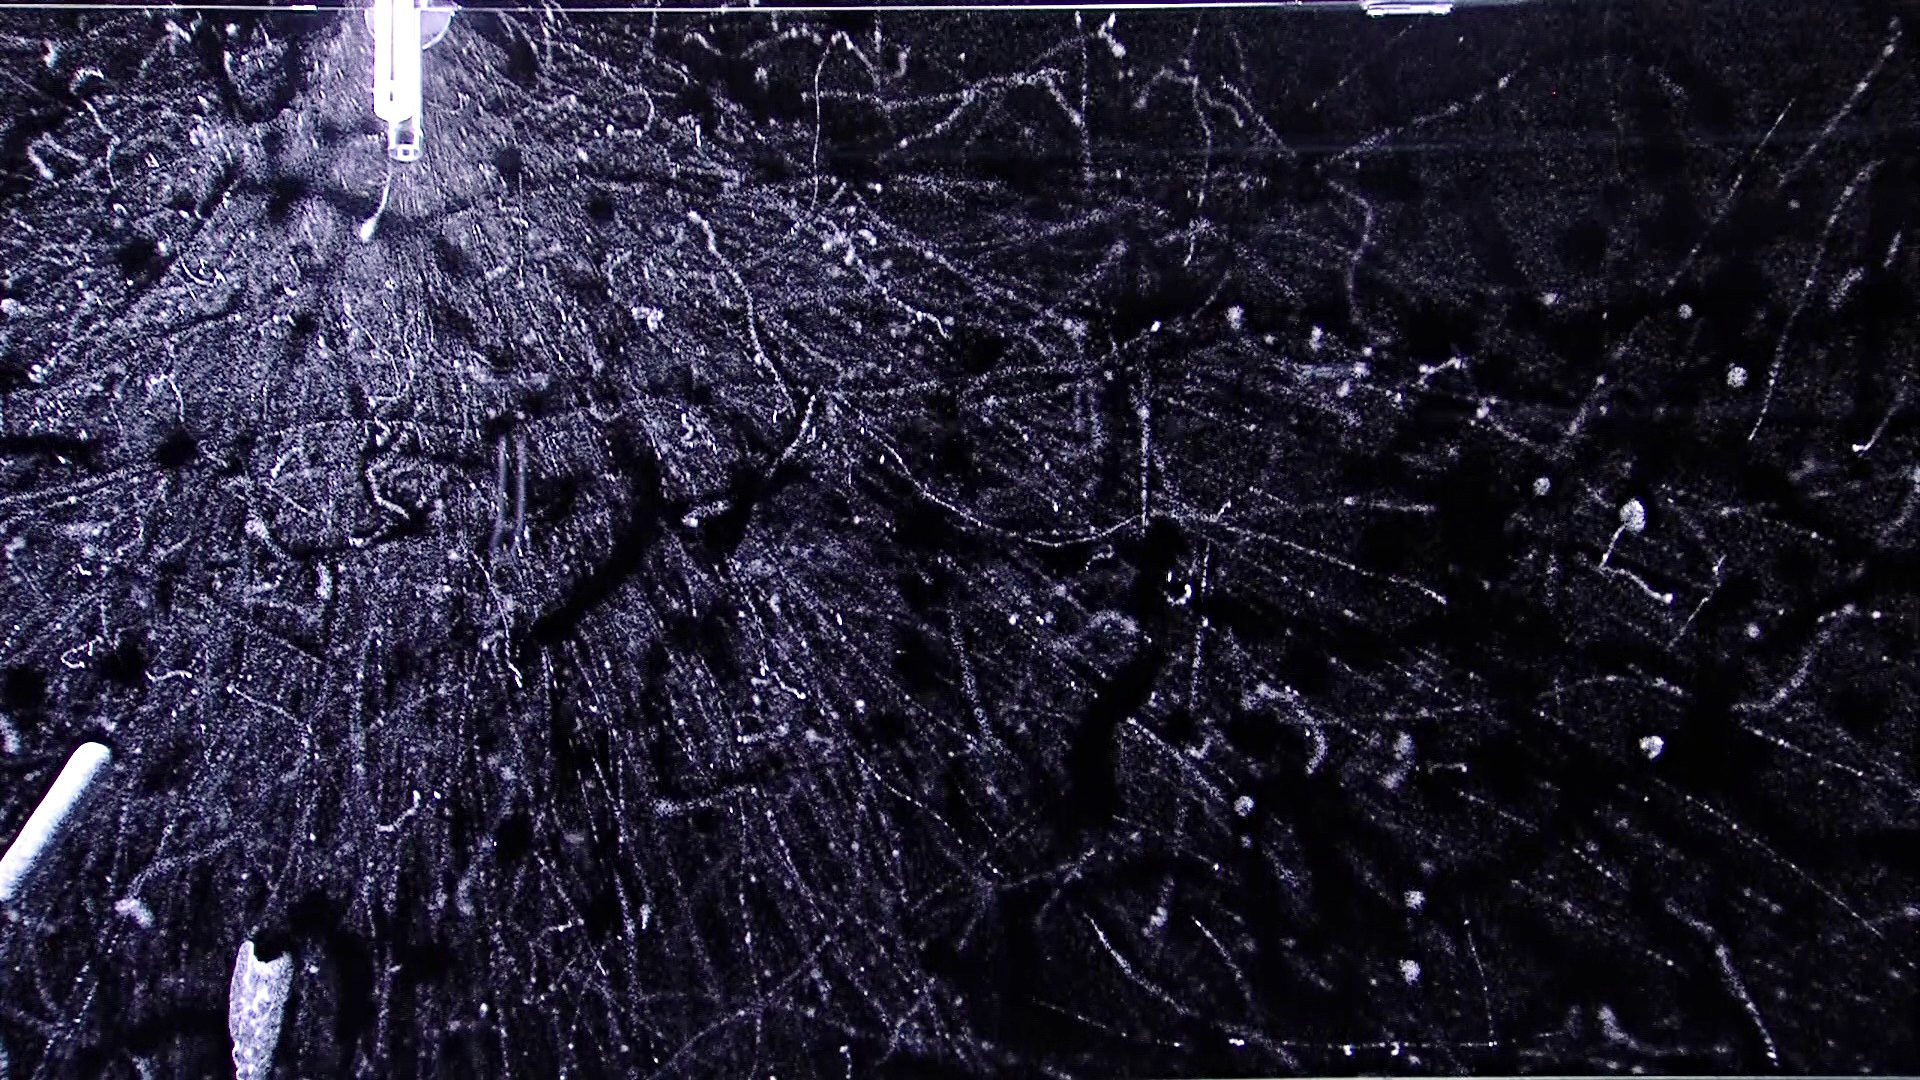 Cloudy tracks of electrons emmited from the beta source of the Radionuclide module of the Nuledo Unica cloud chamber.